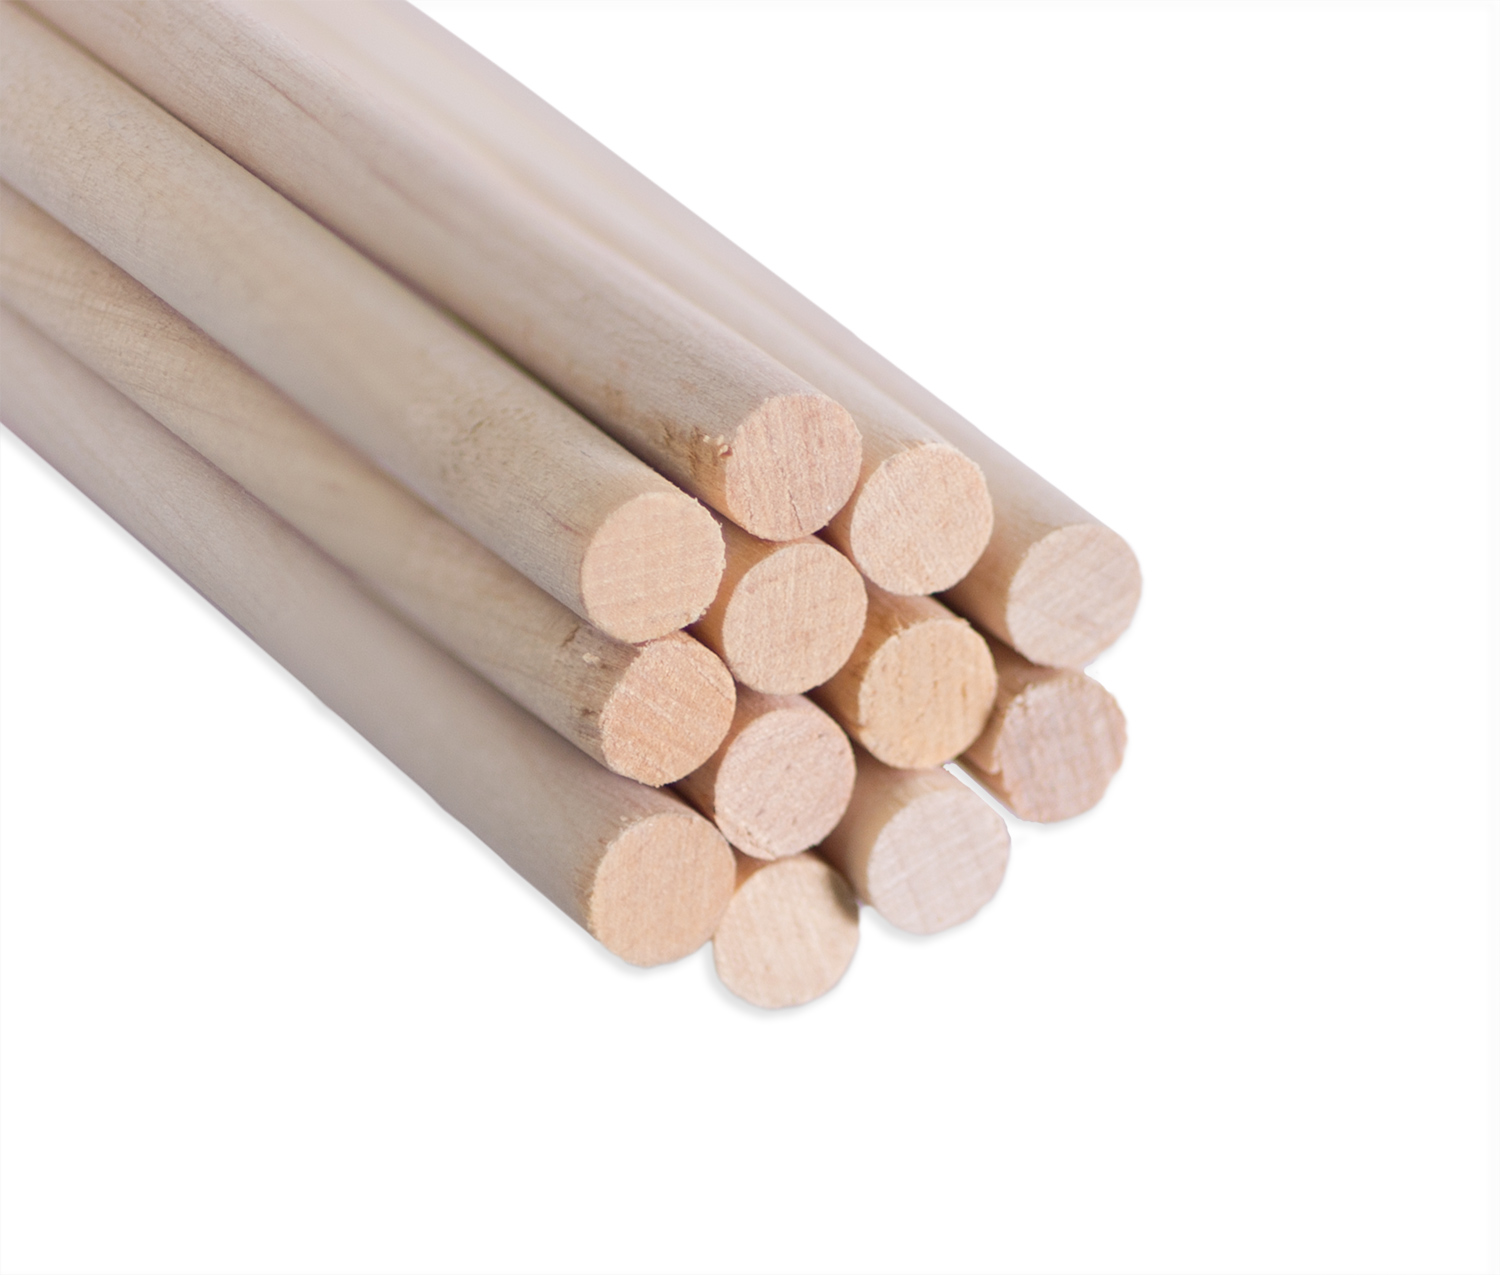 "Wood Dowel Rod 1/4"" x 6"" - 12 Pack"